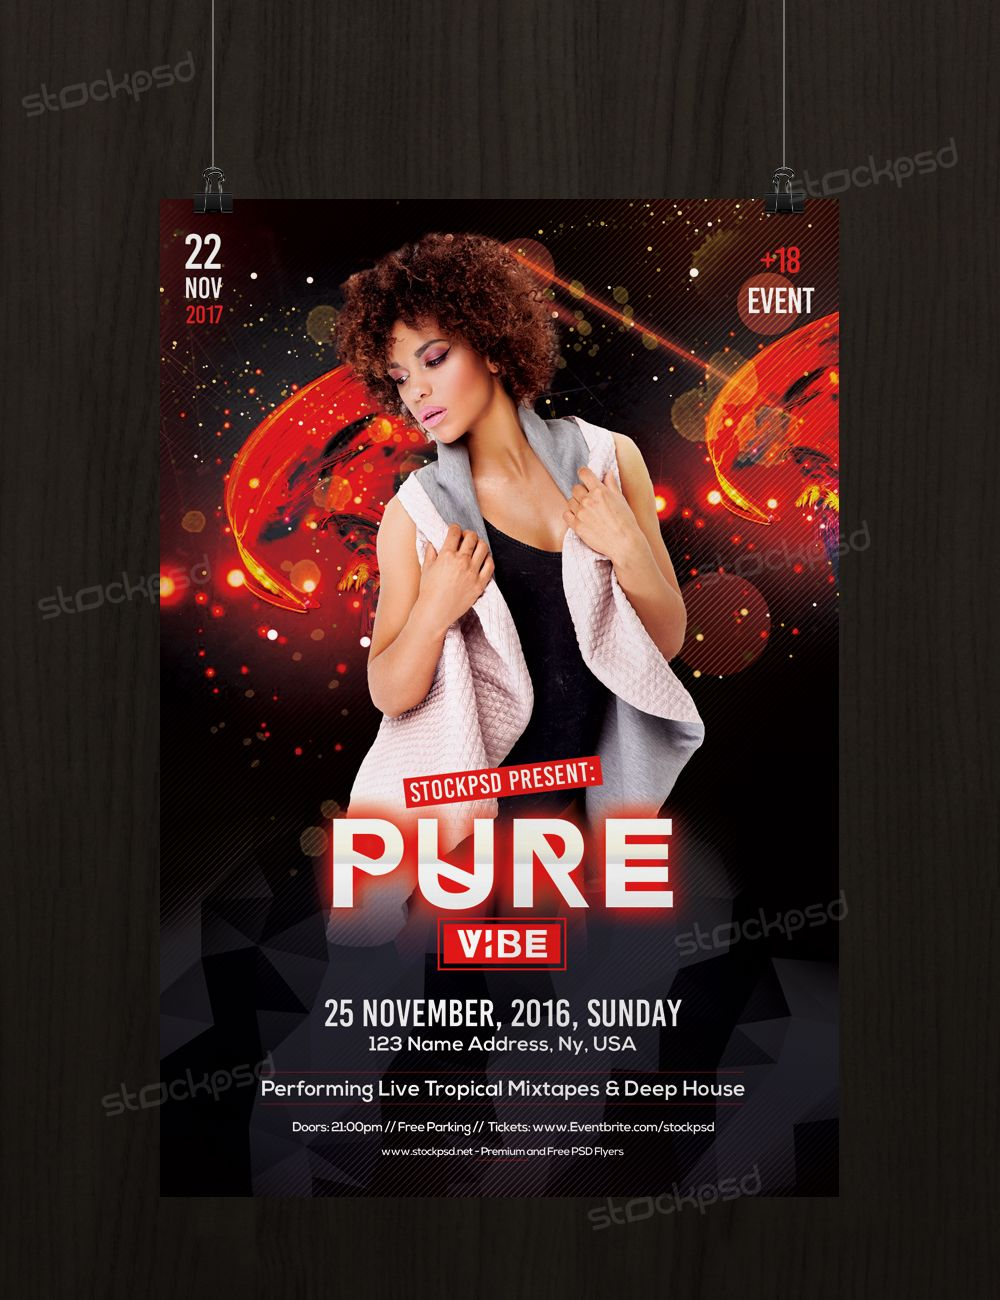 Pure Vibe  Download Free Psd Flyer Template  Psd Flyers